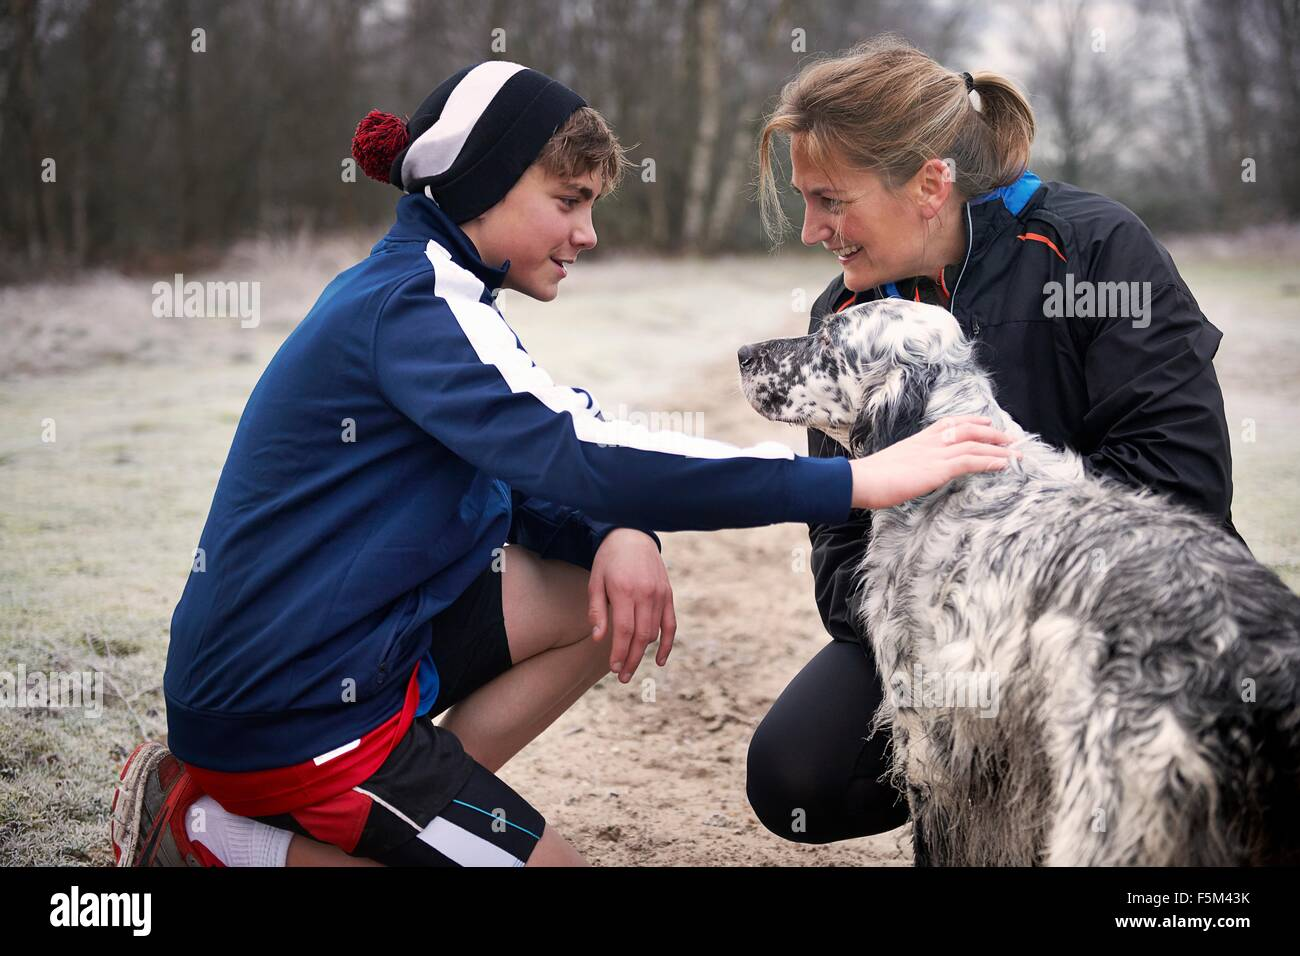 Mother and son crouching down stroking dog, face to face smiling - Stock Image